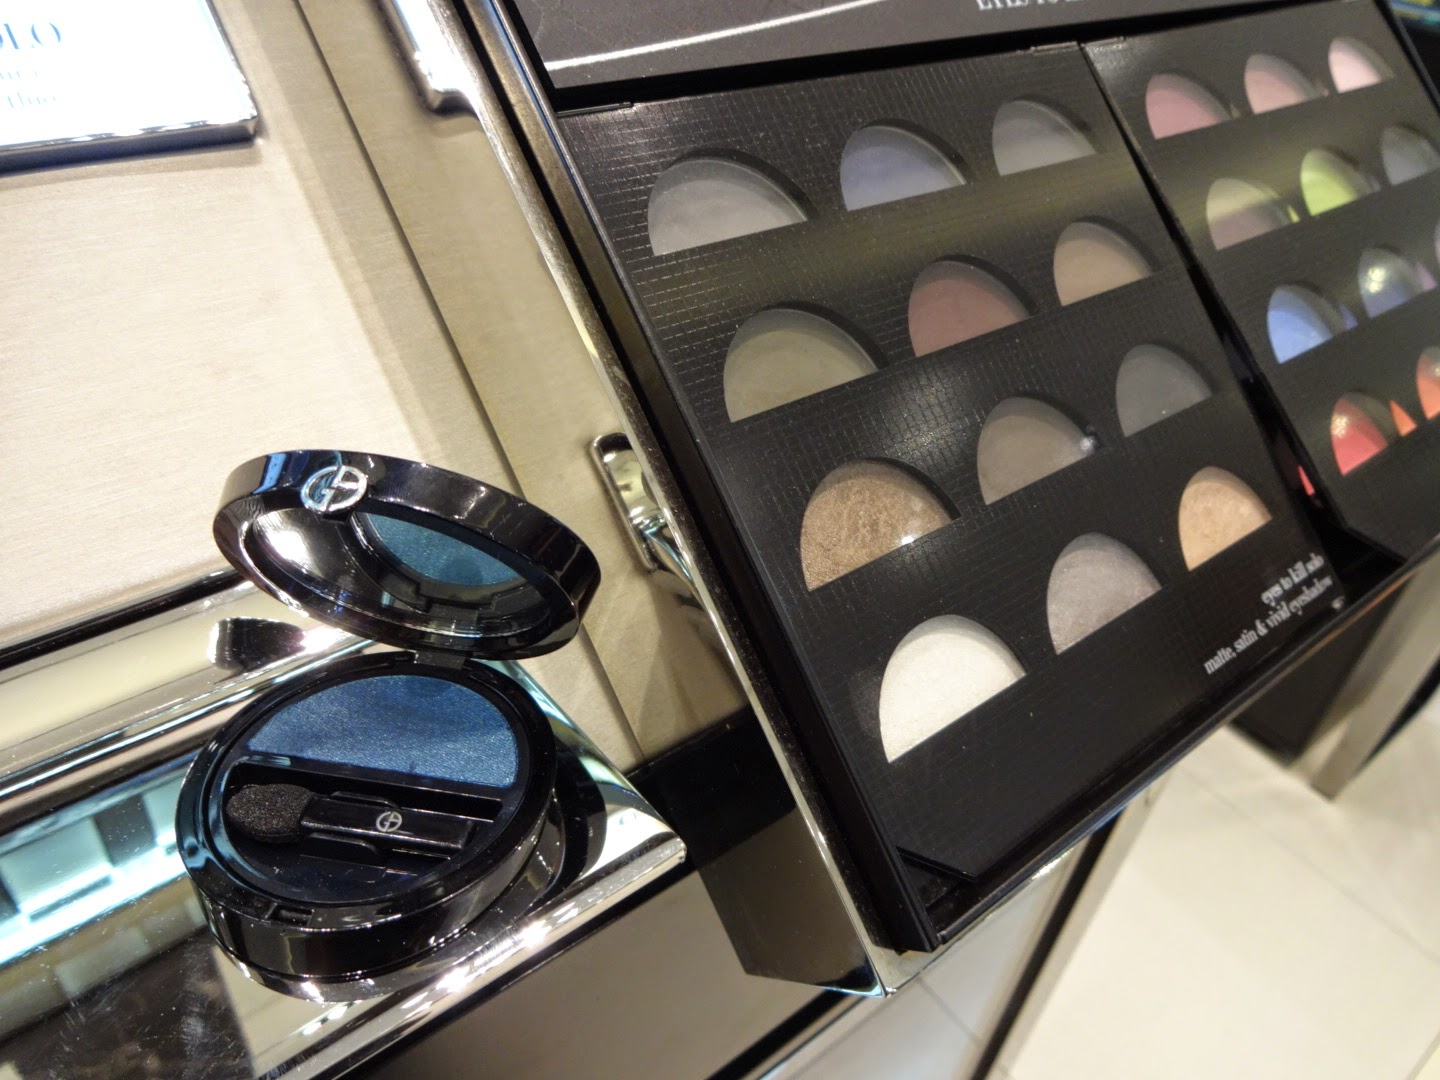 Giorgio Armani make up spring 2014 Eyes To Kill Solo Eyeshadow